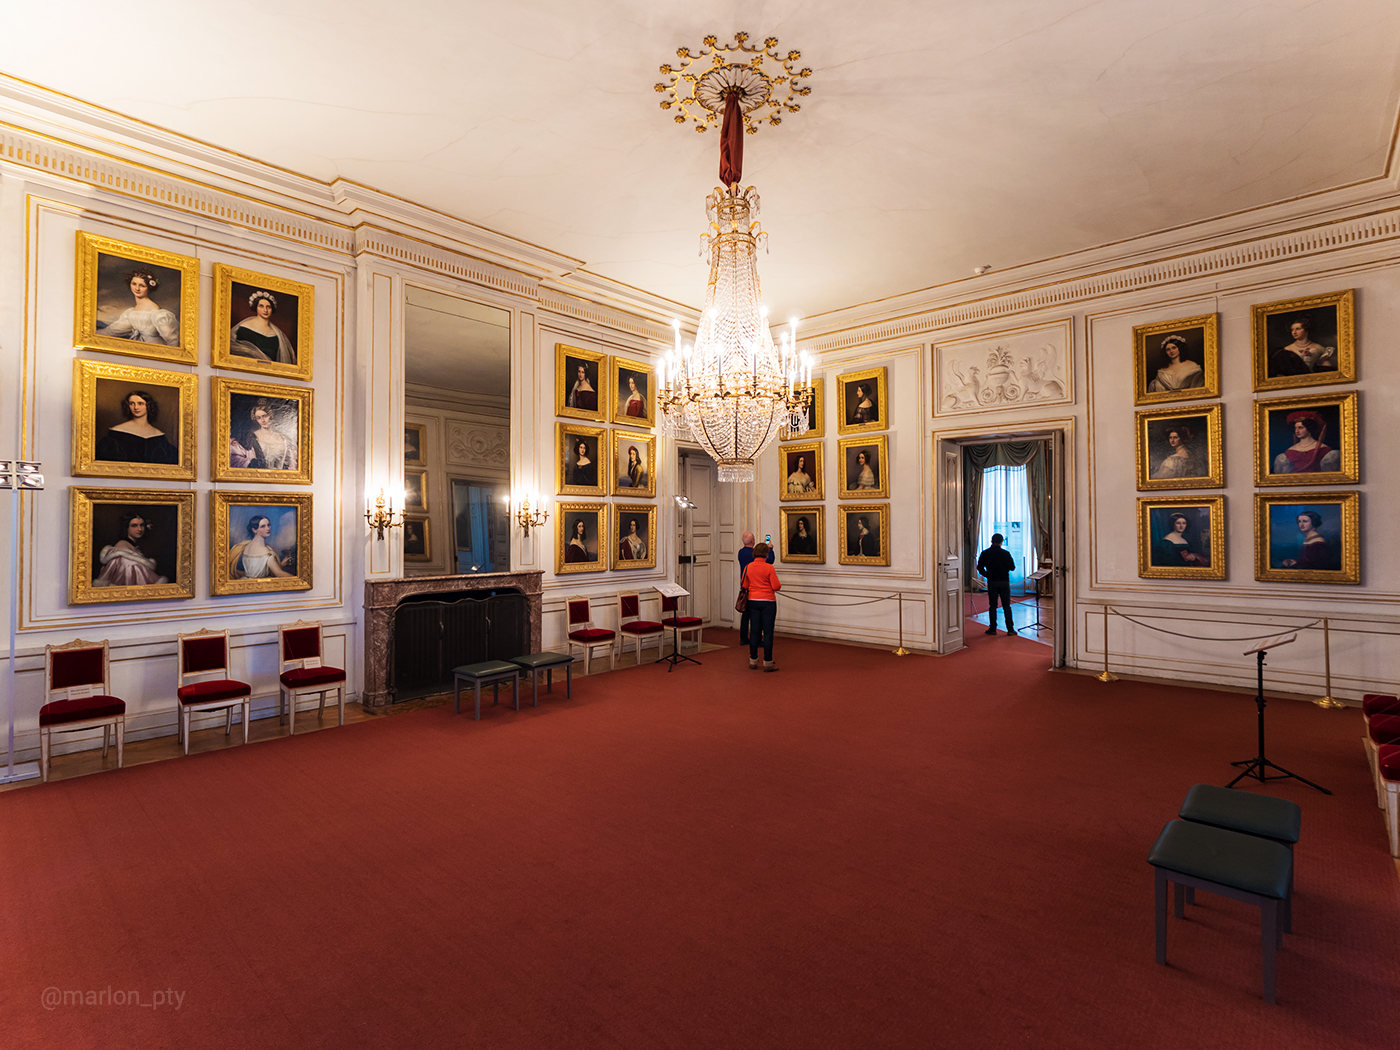 The Galleries of Beauties in the Nymphenburg Palace. Photo: Marlon I. Torres